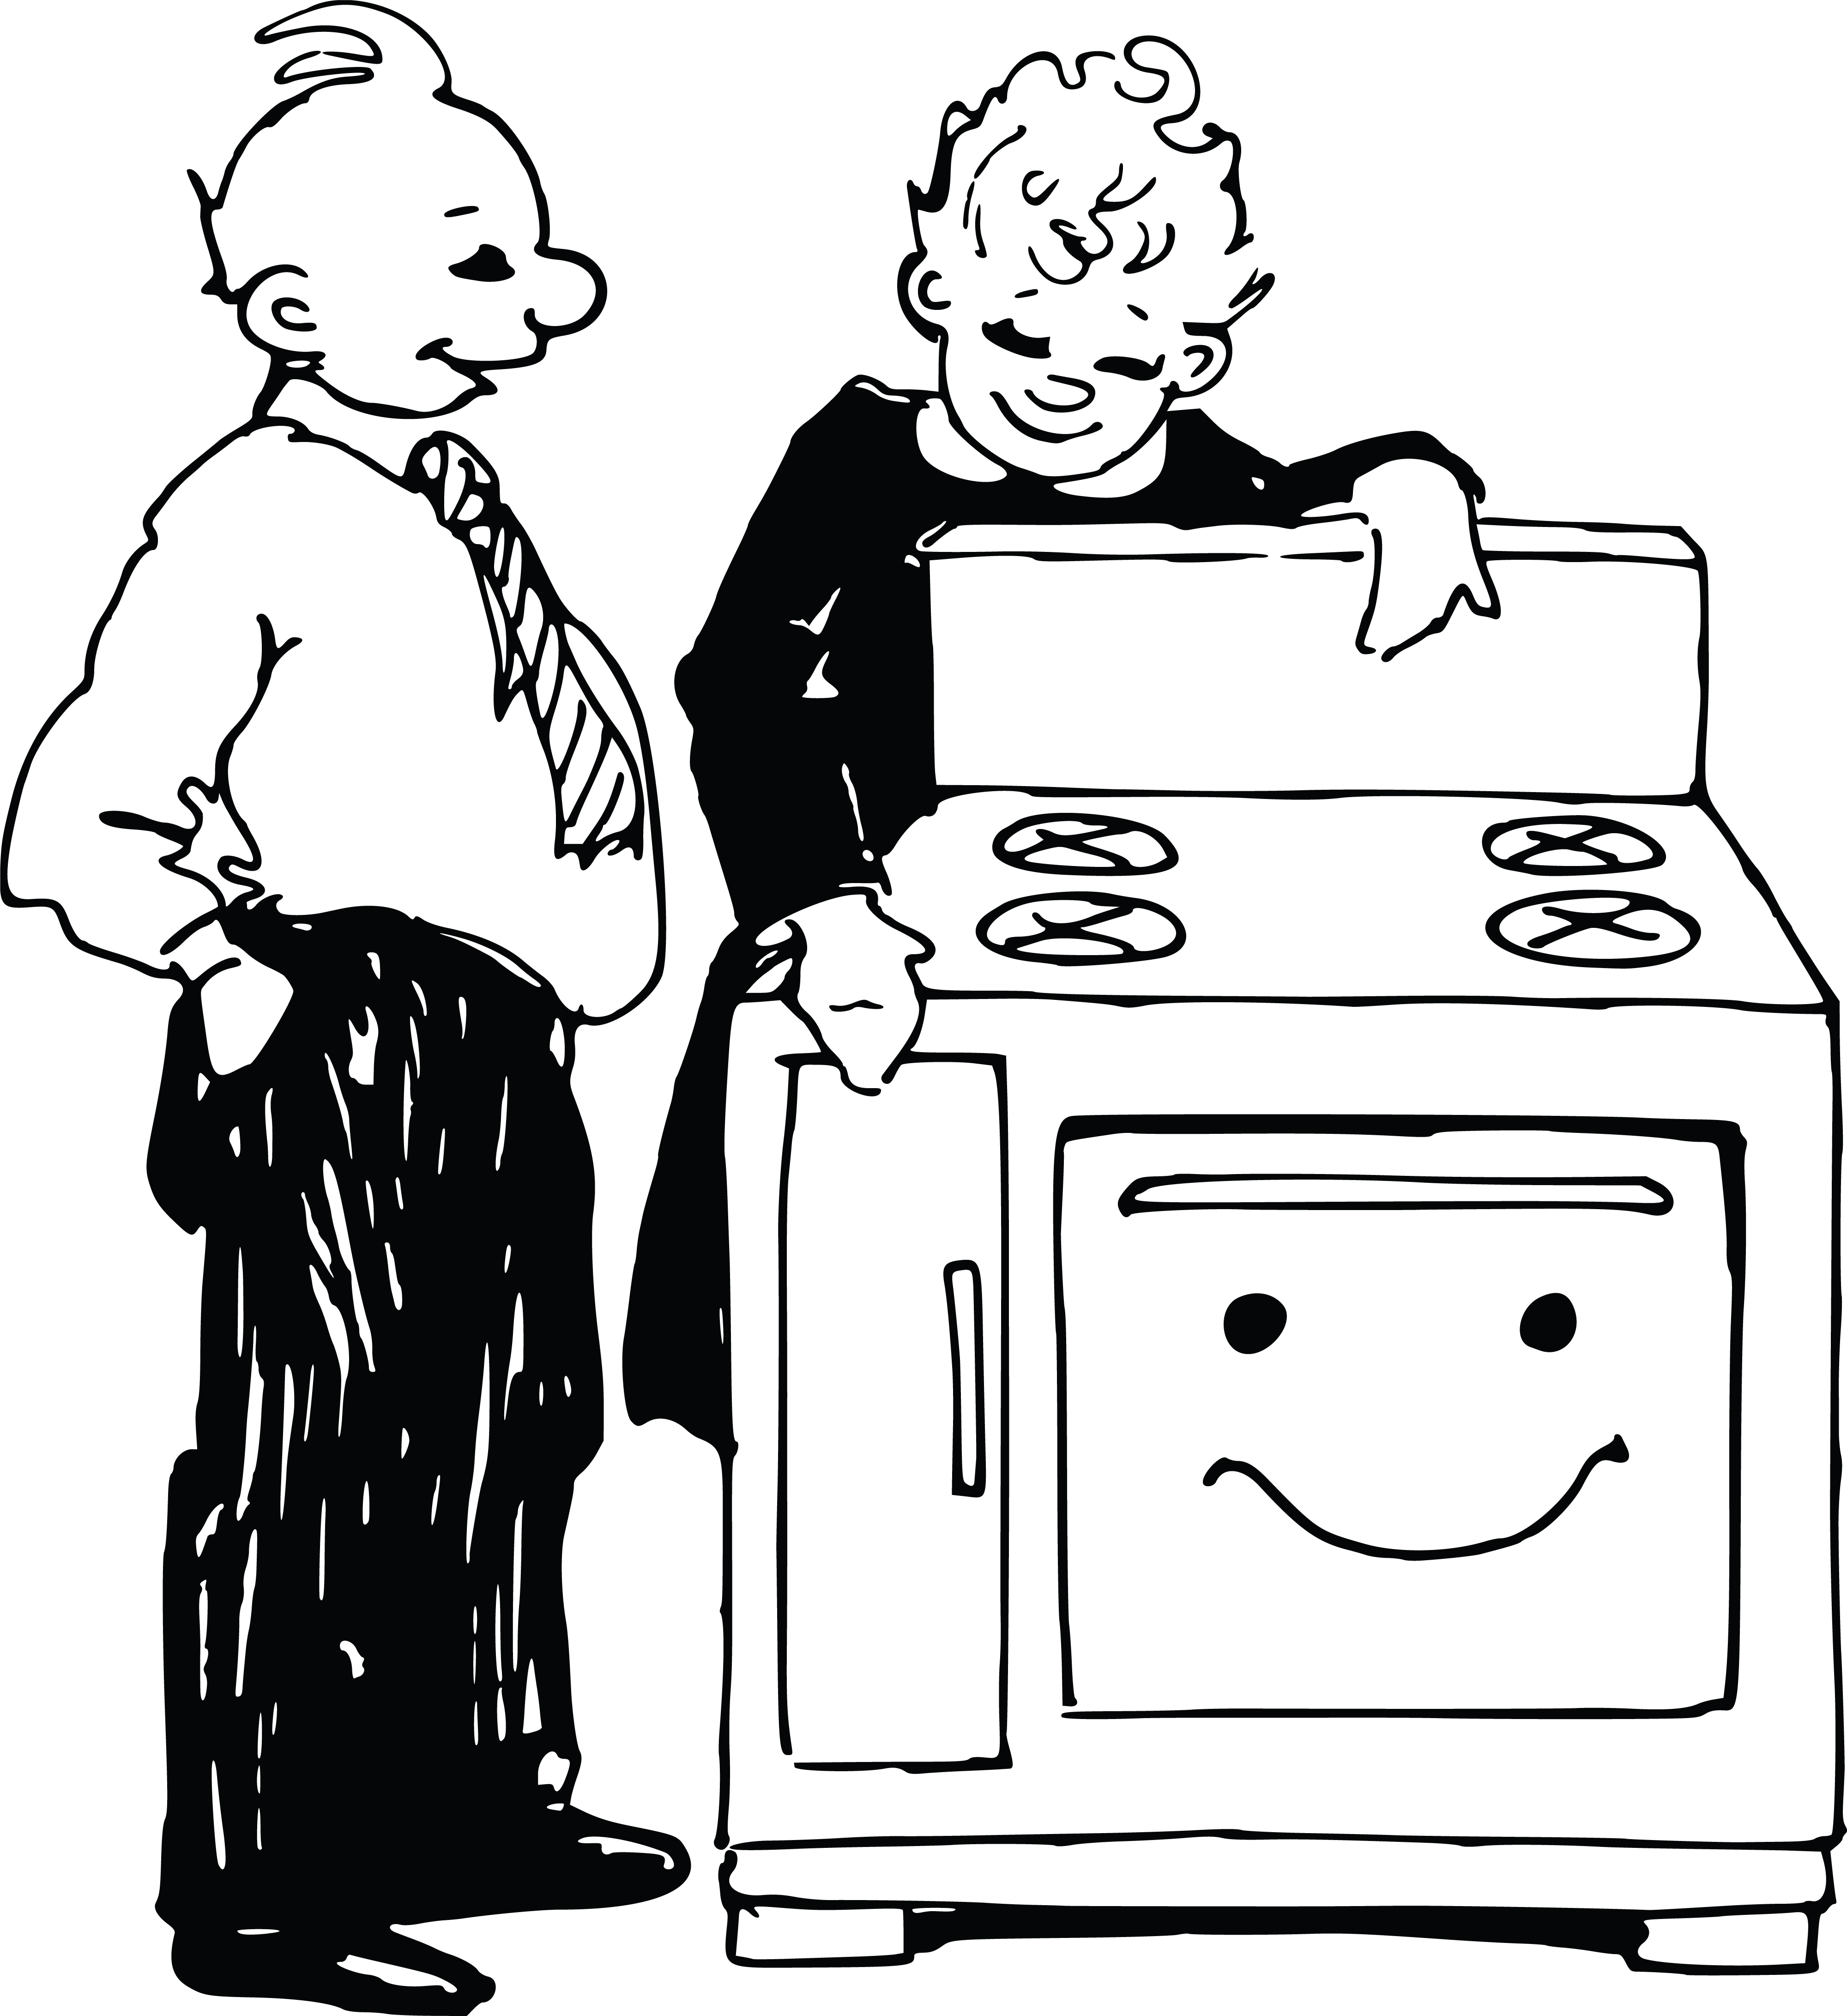 Free Clipart Of A retro salesman and woman looking at an oven.